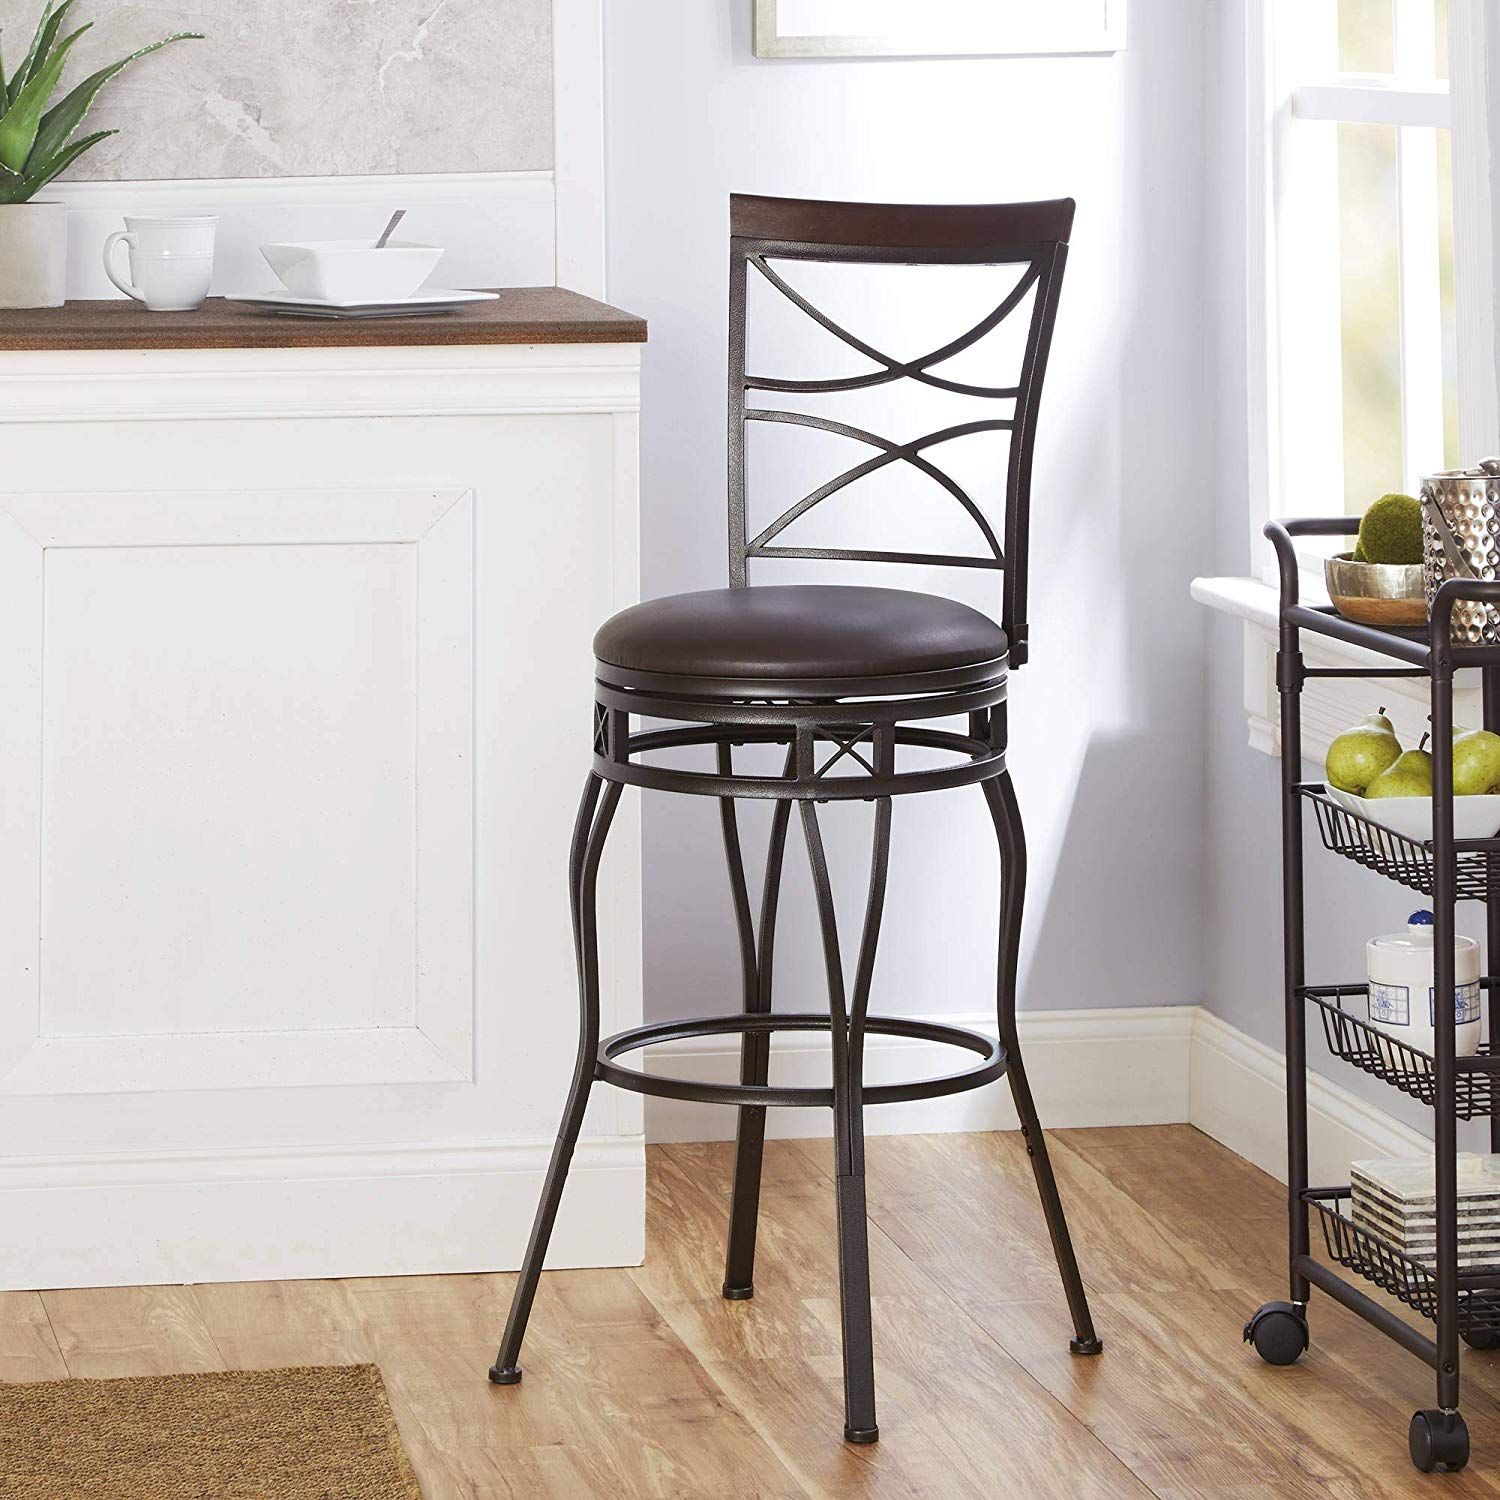 9f1f1e88ee2f784423ac99c9c5aade42 - Better Homes And Gardens Counter Stools